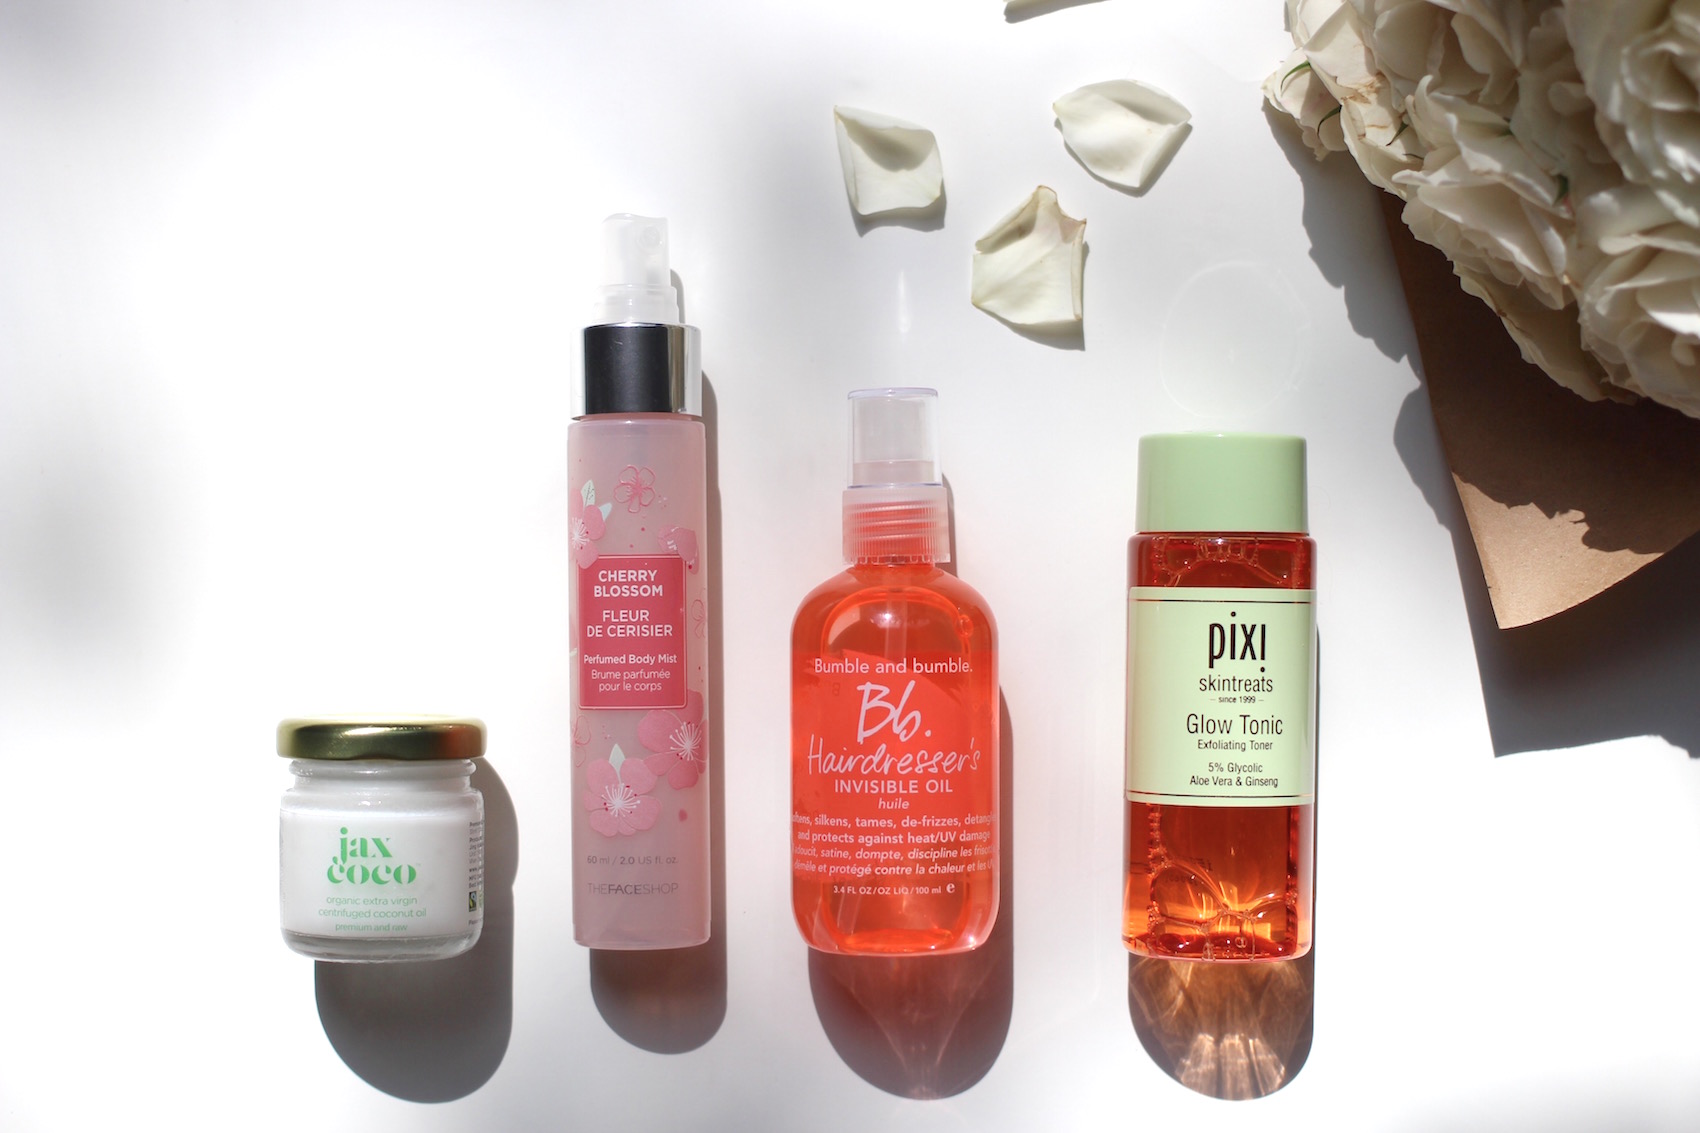 WoahStyle.com-Pre Fall Beauty Faves for Beautiful Skin and Silky Hair-Pixi Glow Tonic-Jax Coco Organic Extra Virgin Coconut Oil-The FaceShop Cherry Blossom Body Mist_Bumble and Bumble Hairdressers Invisible Oil_Fall 2015_8705.jpg